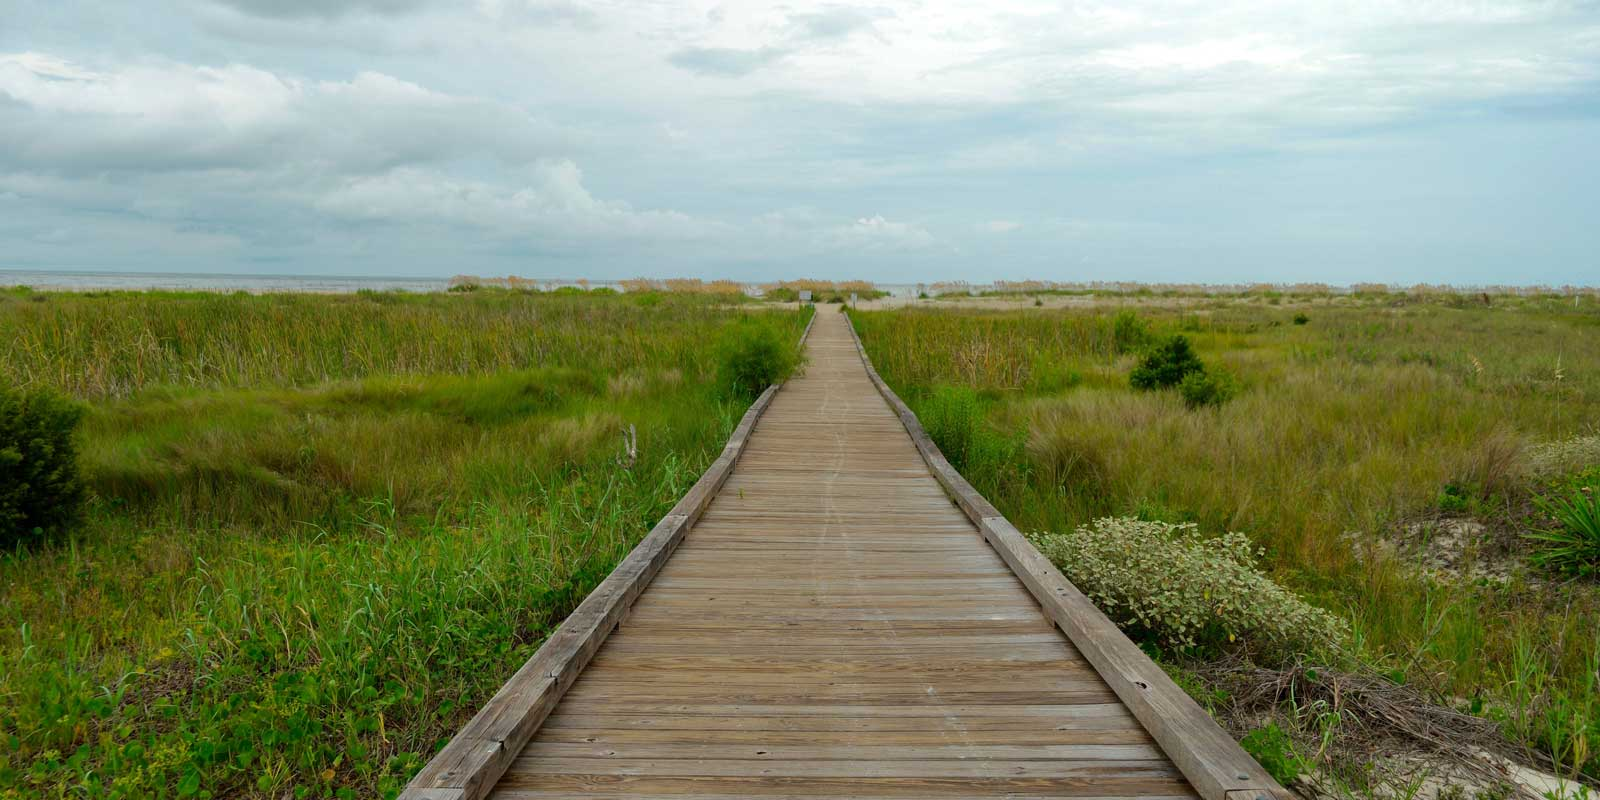 Landscape view of a boardwalk cutting through seagrass in Hilton Head, SC.